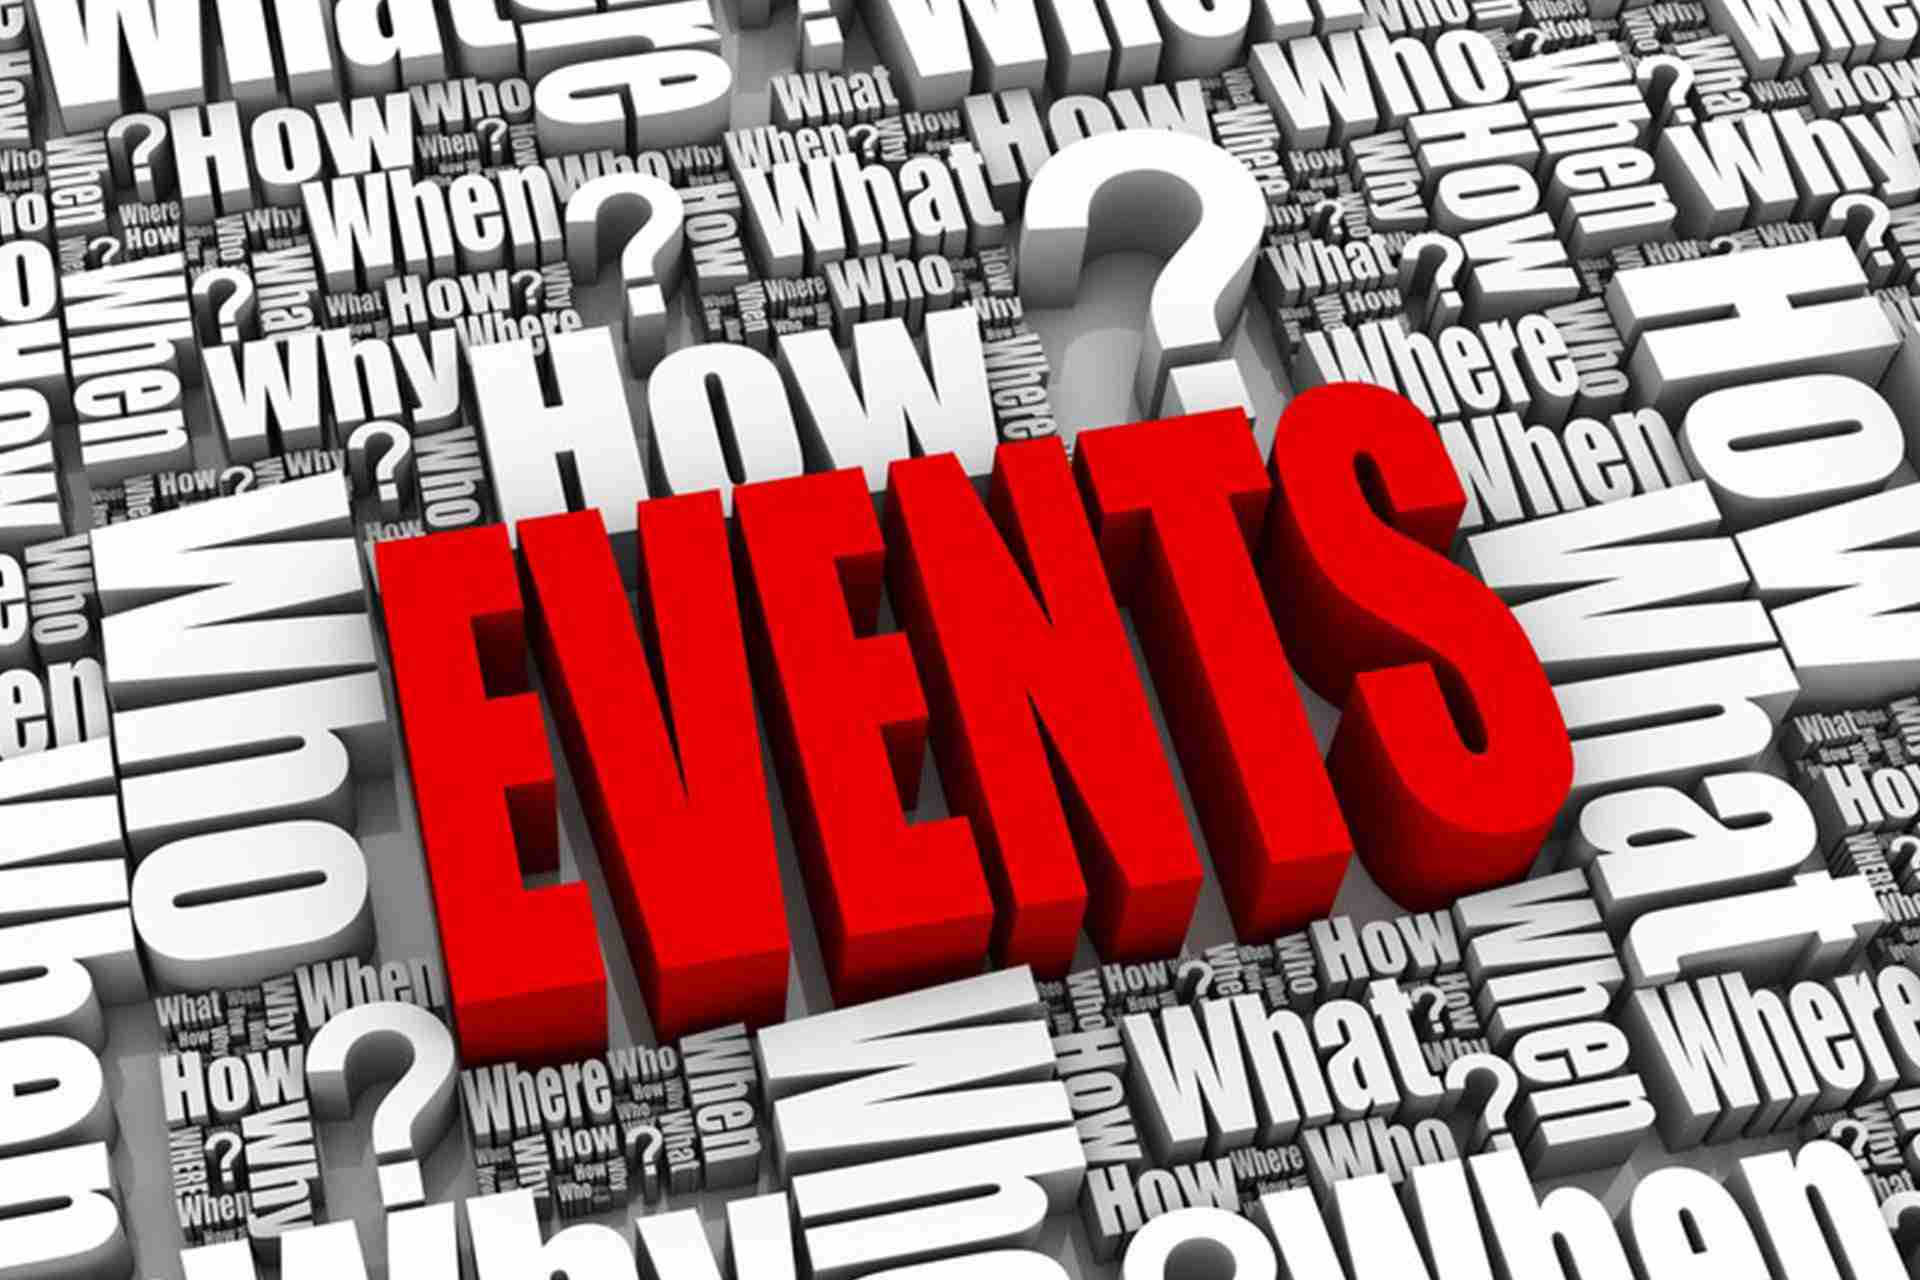 Happenings / Events